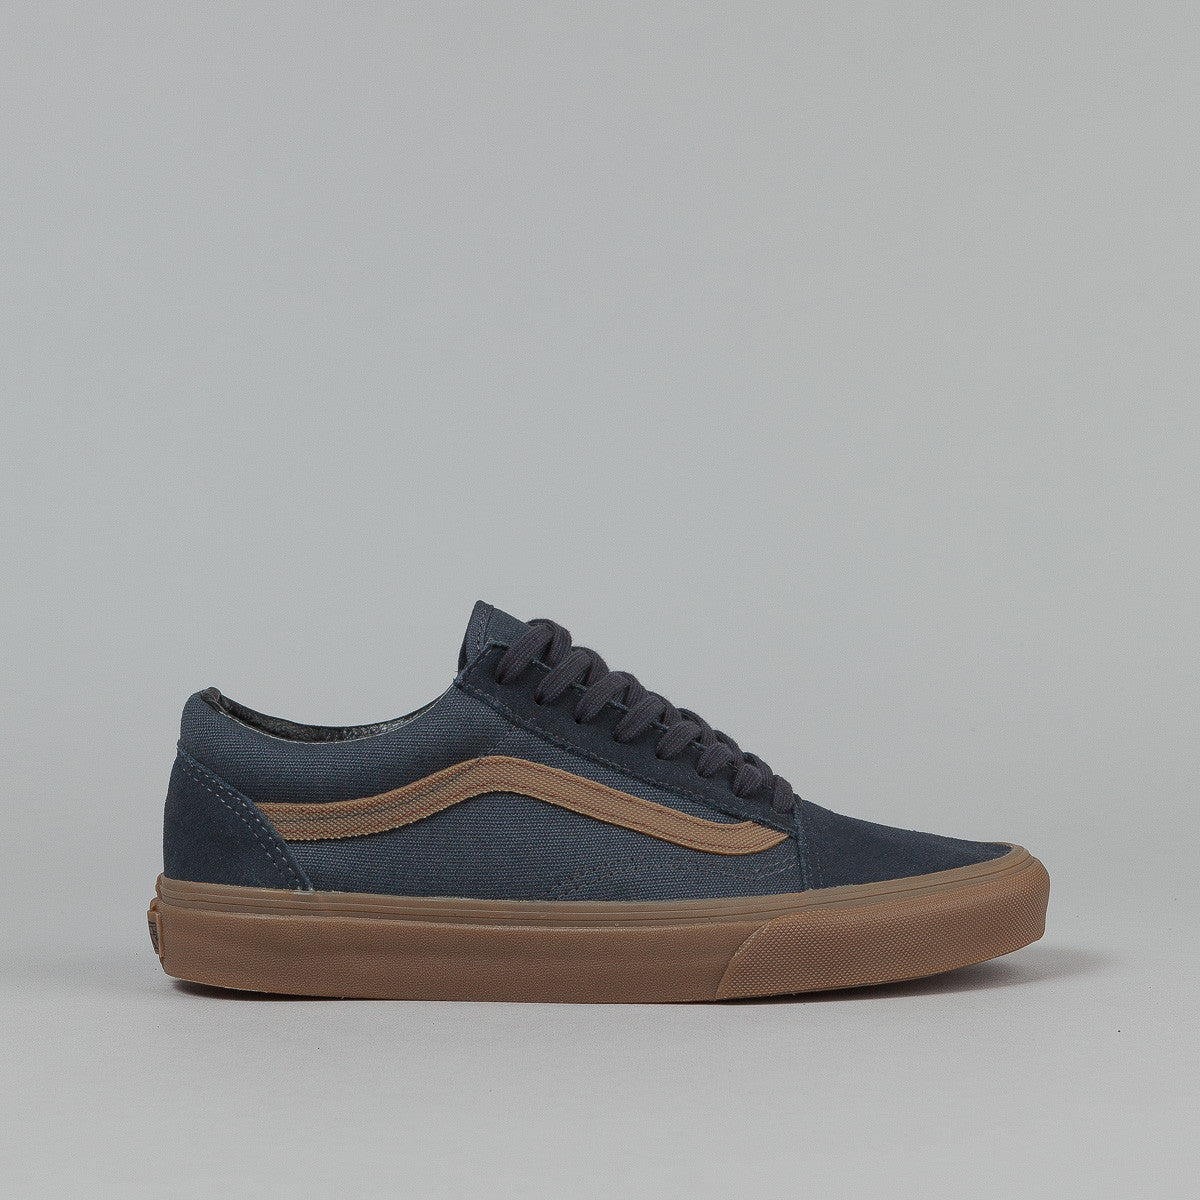 Vans Old Skool Shoes (Gum Sidestripe)